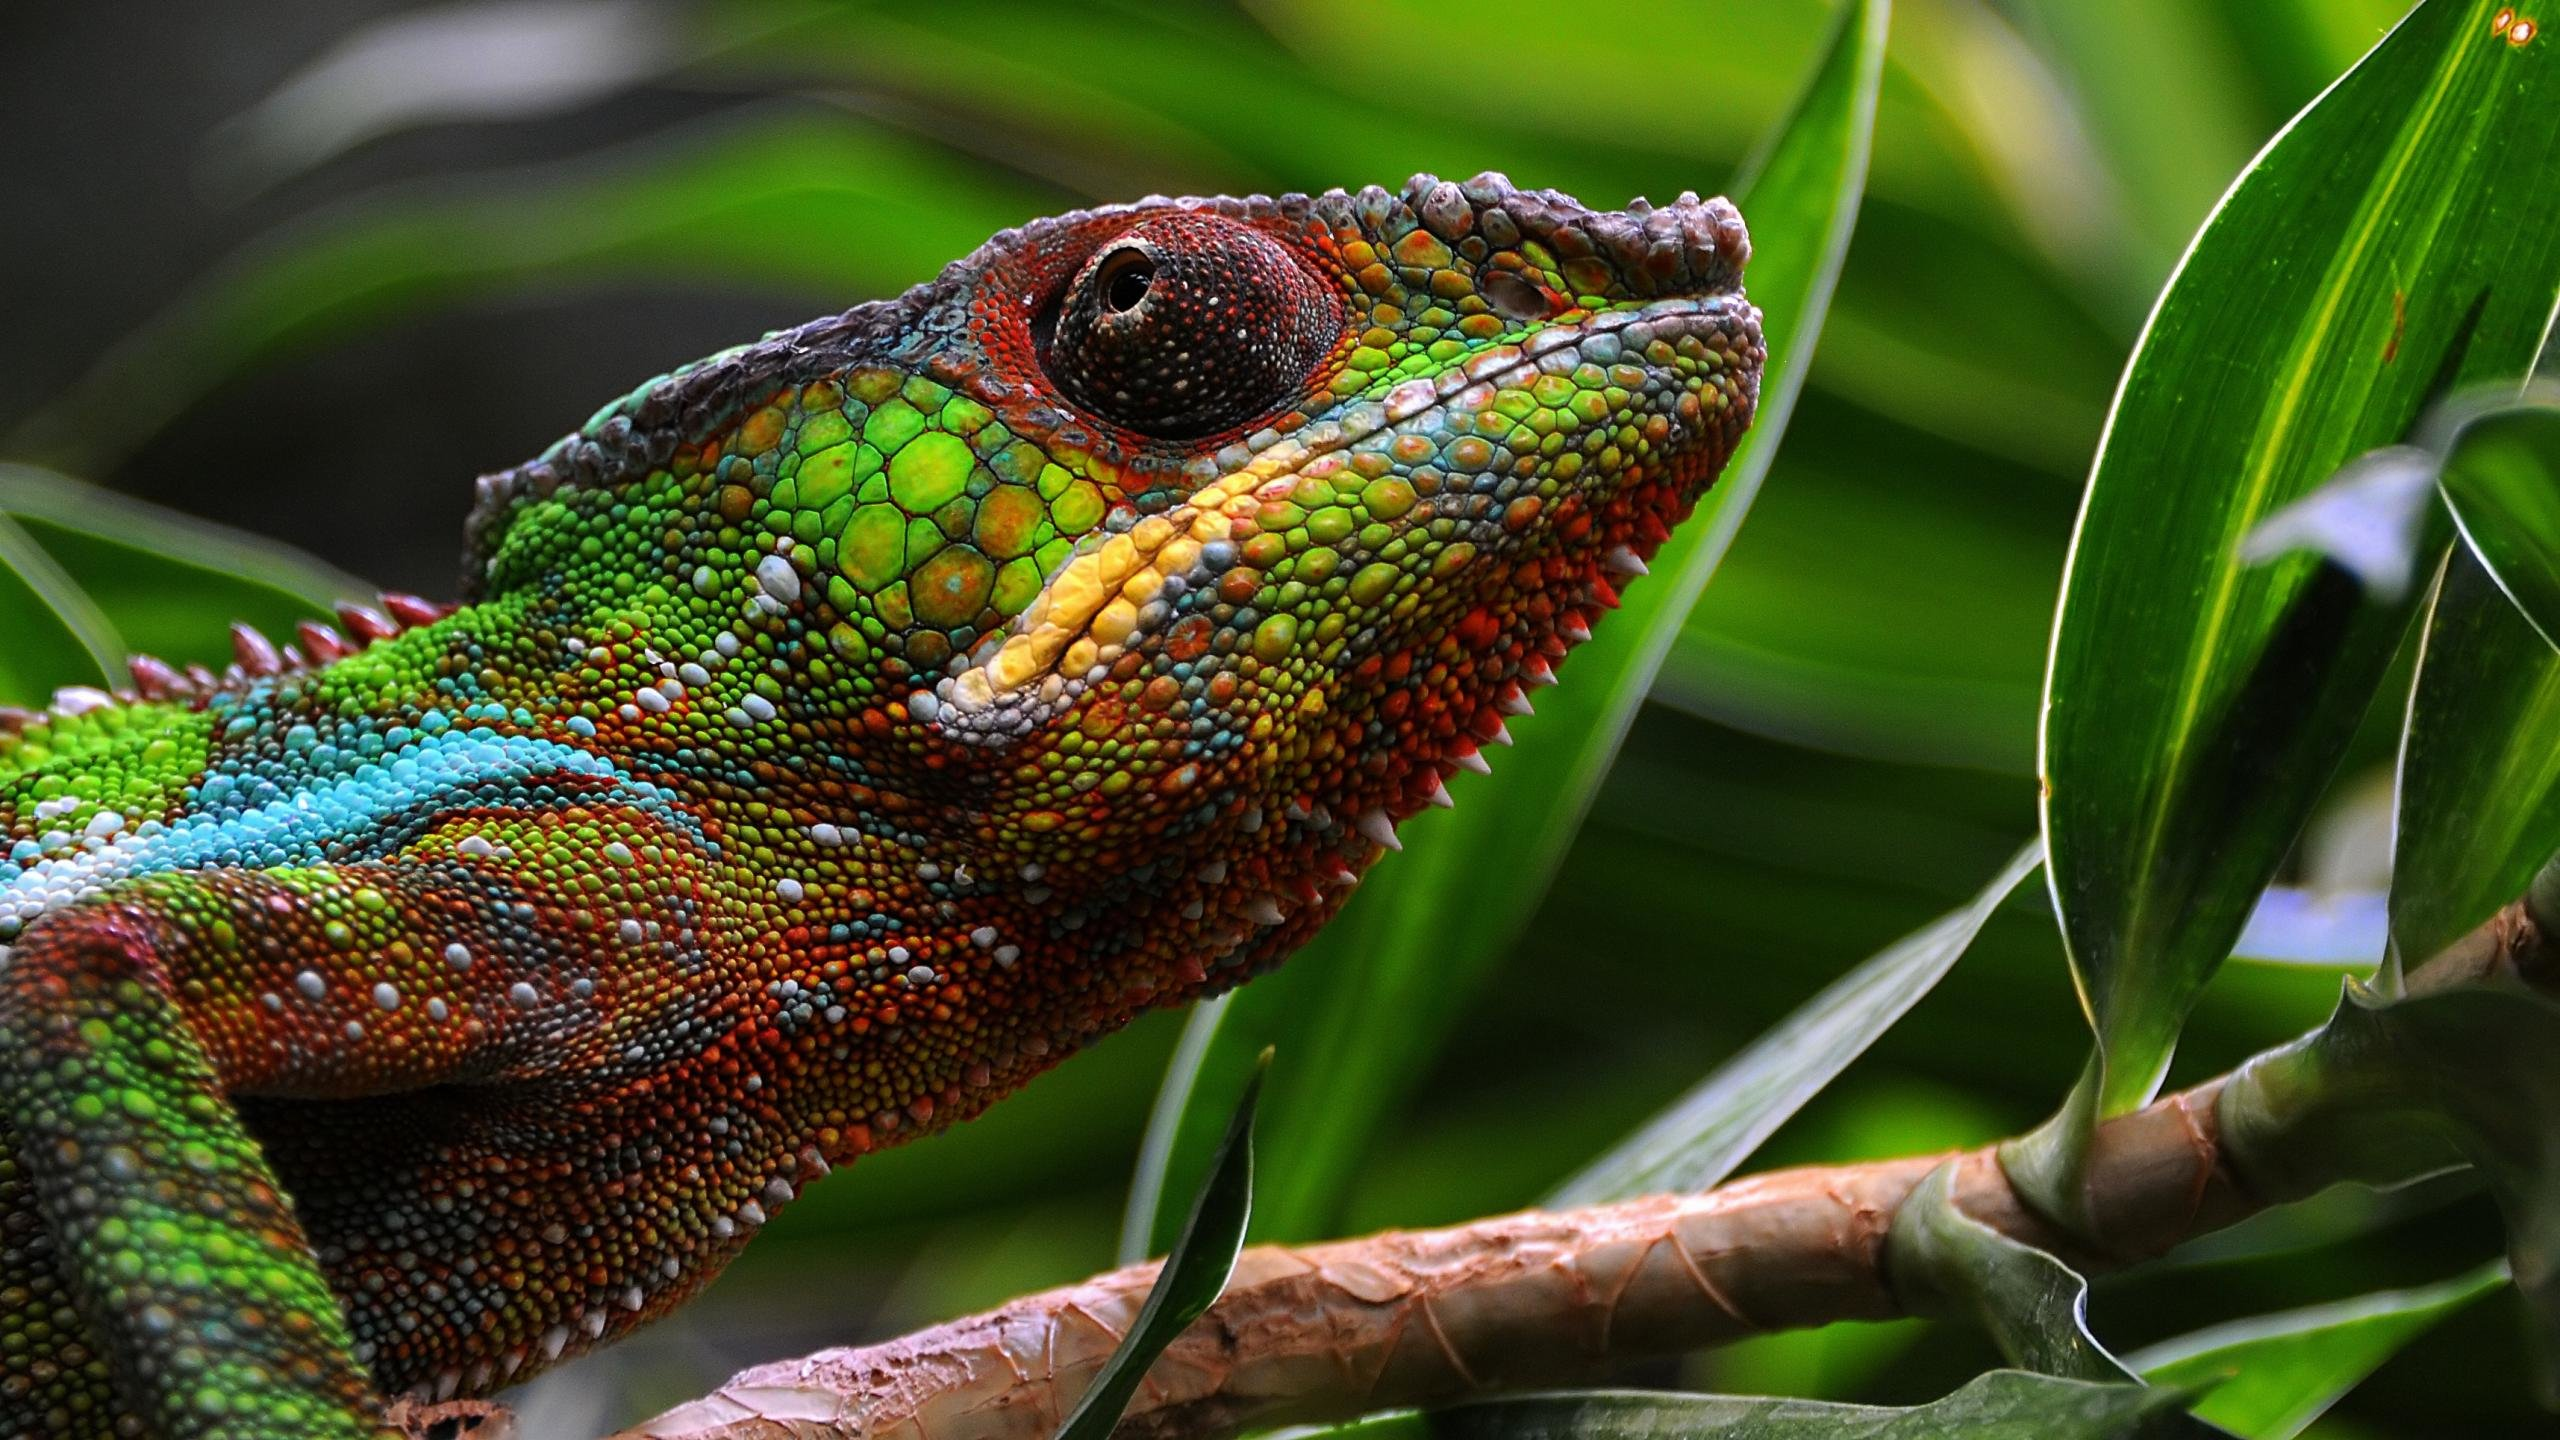 Awesome Chameleon free wallpaper ID:462543 for hd 2560x1440 desktop